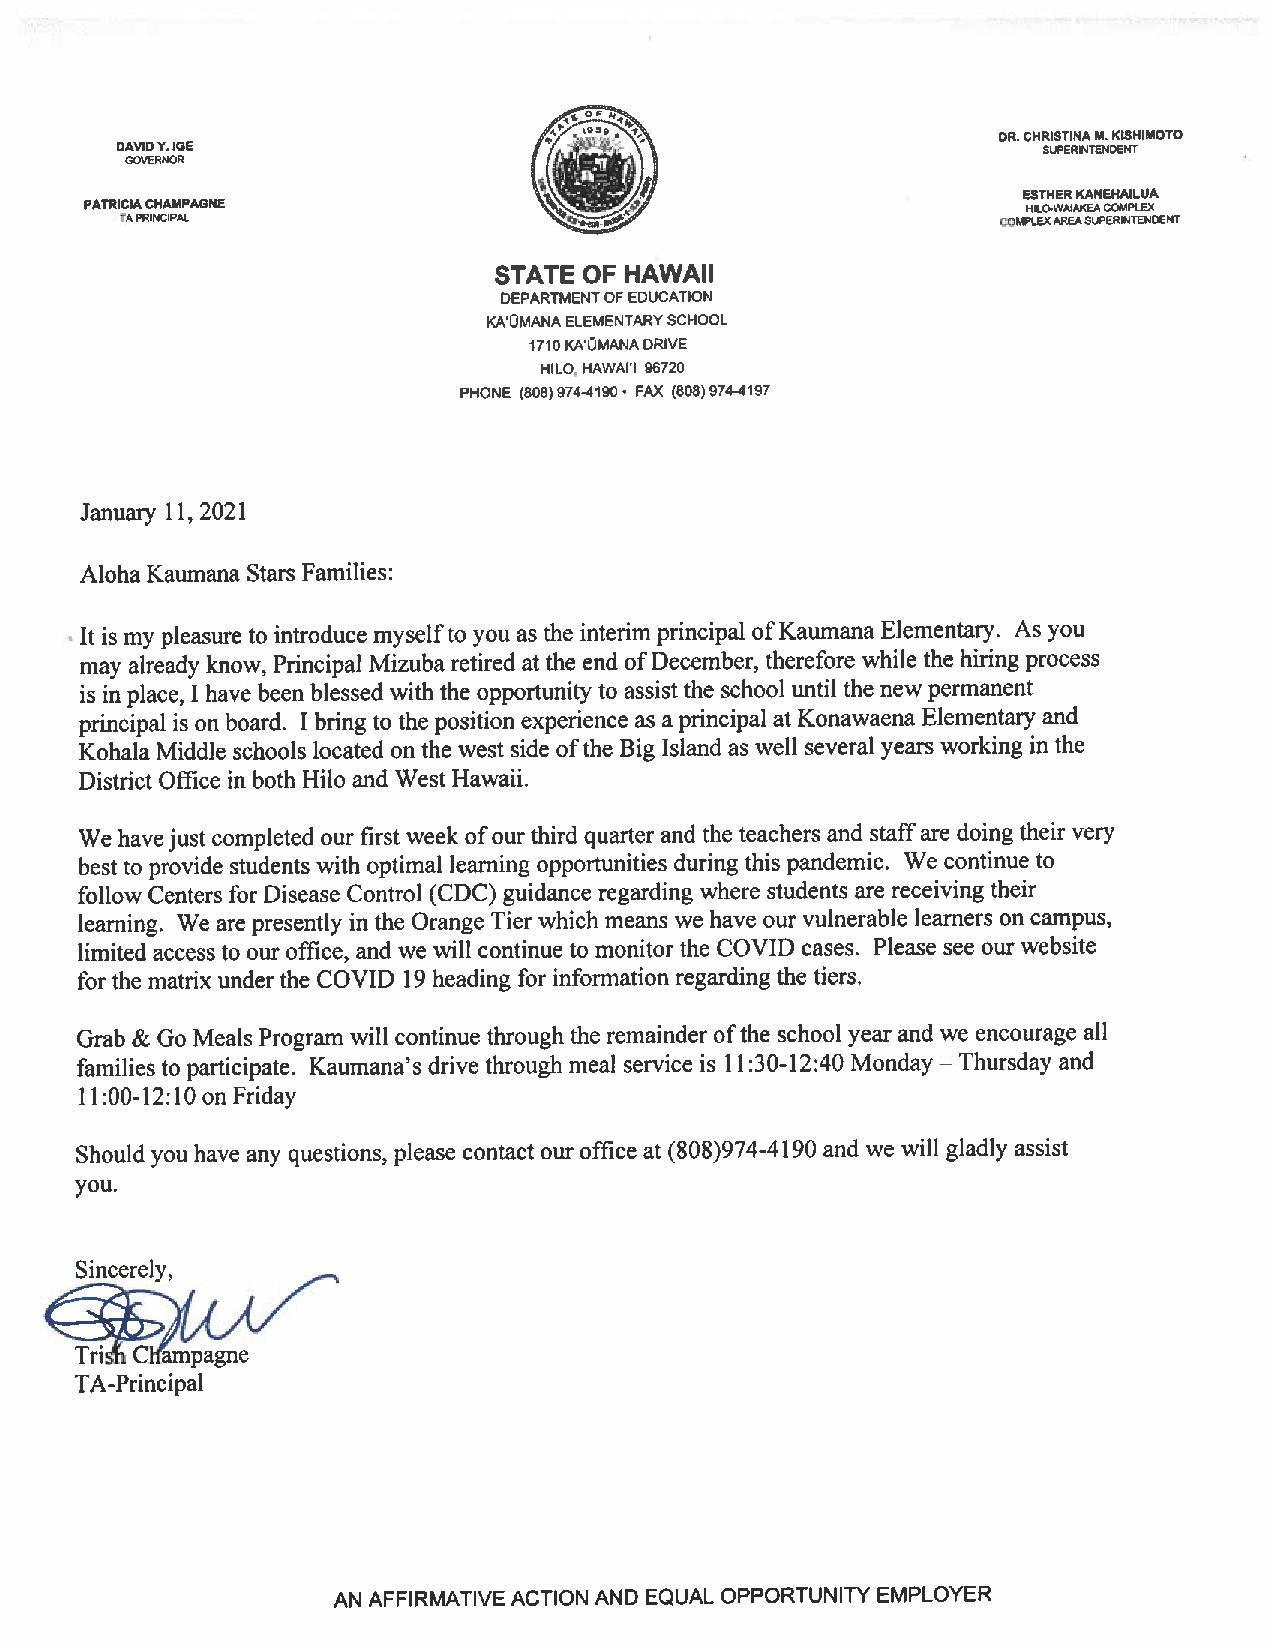 January 11, 2021 - Letter from Principal